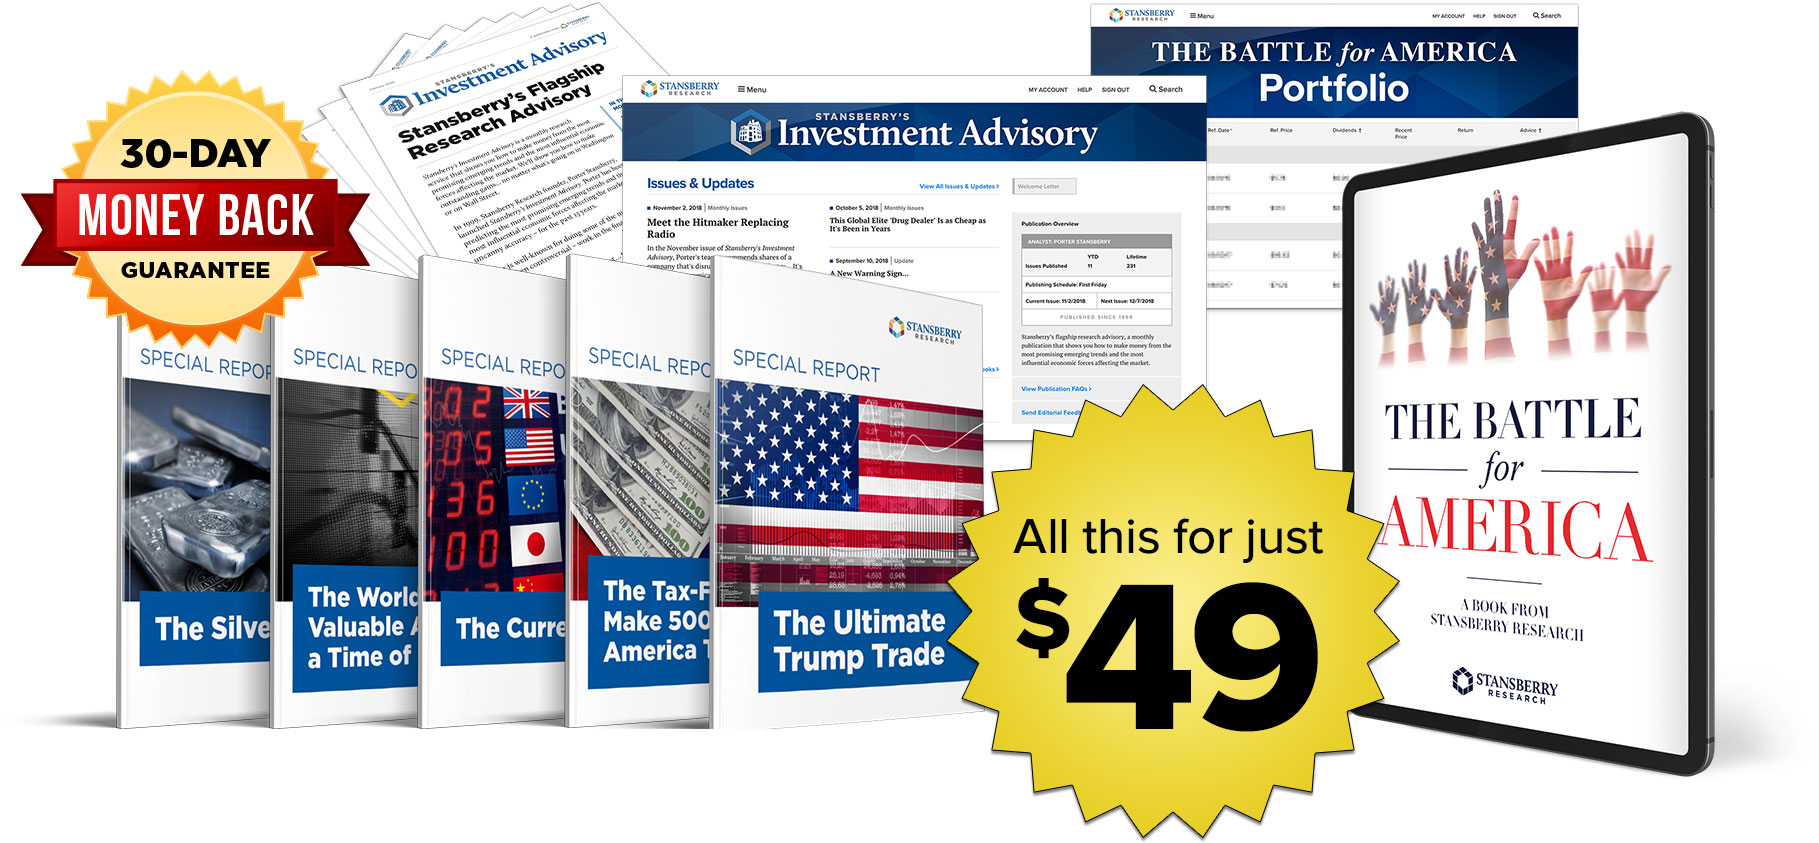 get ron paul battle for america stansberry reseach investment advistory